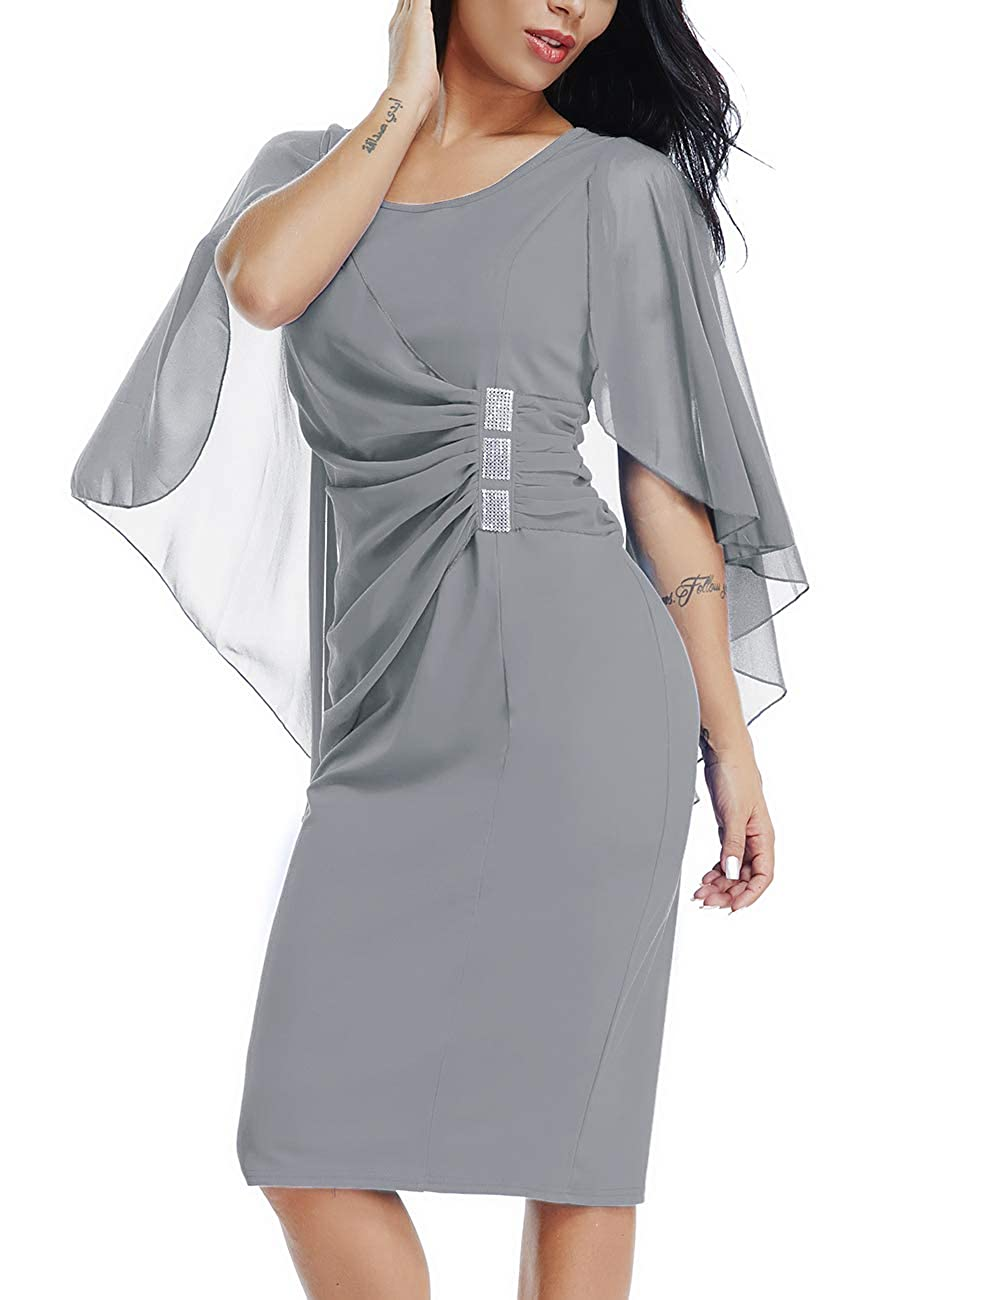 Lalagen Womens Chiffon Plus Size Ruffle Flattering Cape Sleeve Bodycon  Party Pencil Dress Grey L